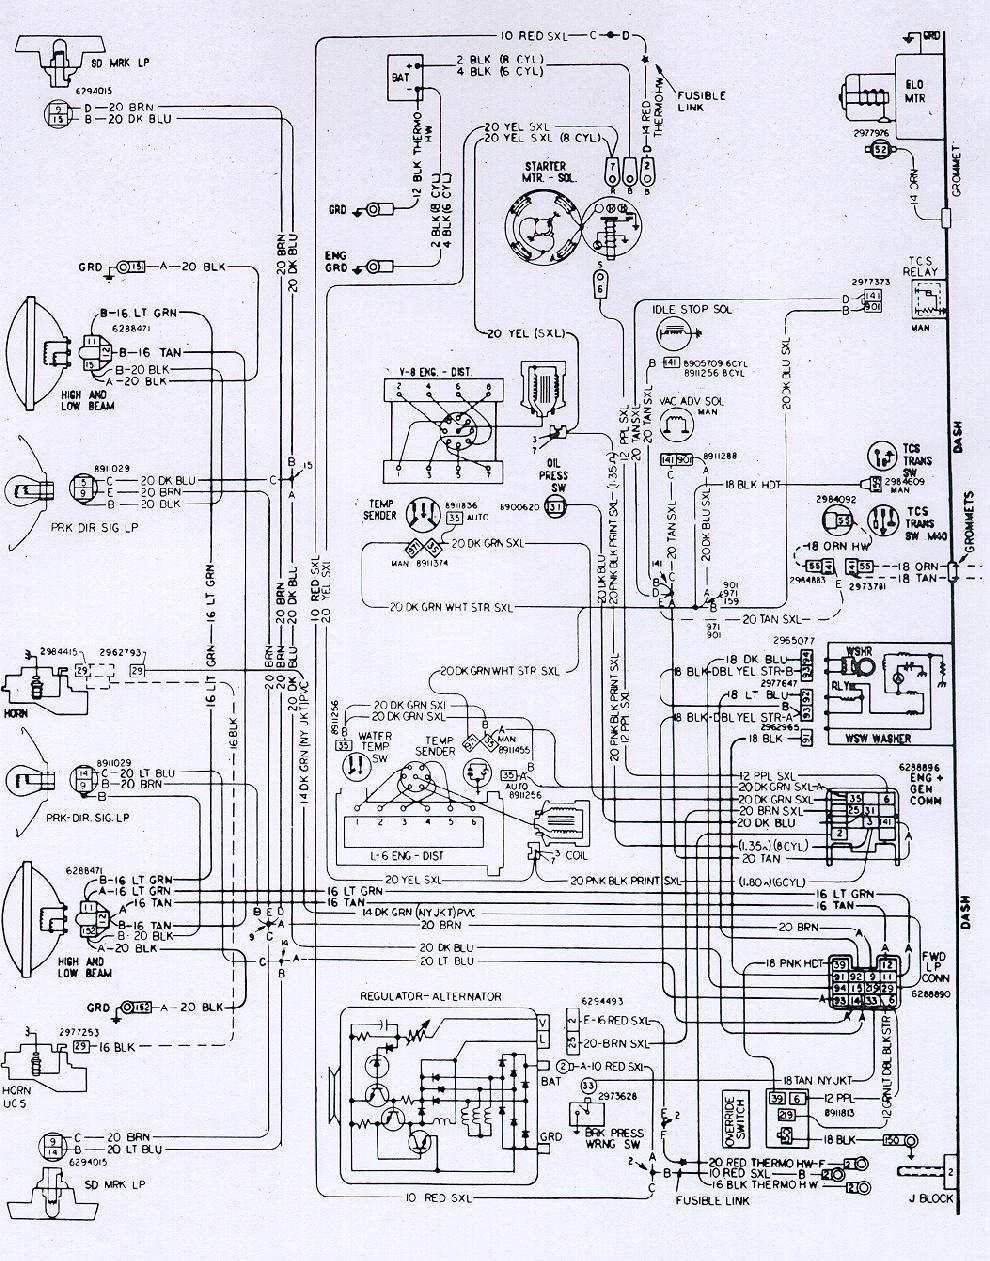 medium resolution of camaro wiring diagrams wiring diagram origin penncock 3800 engine wiring diagram camaro wiring electrical information